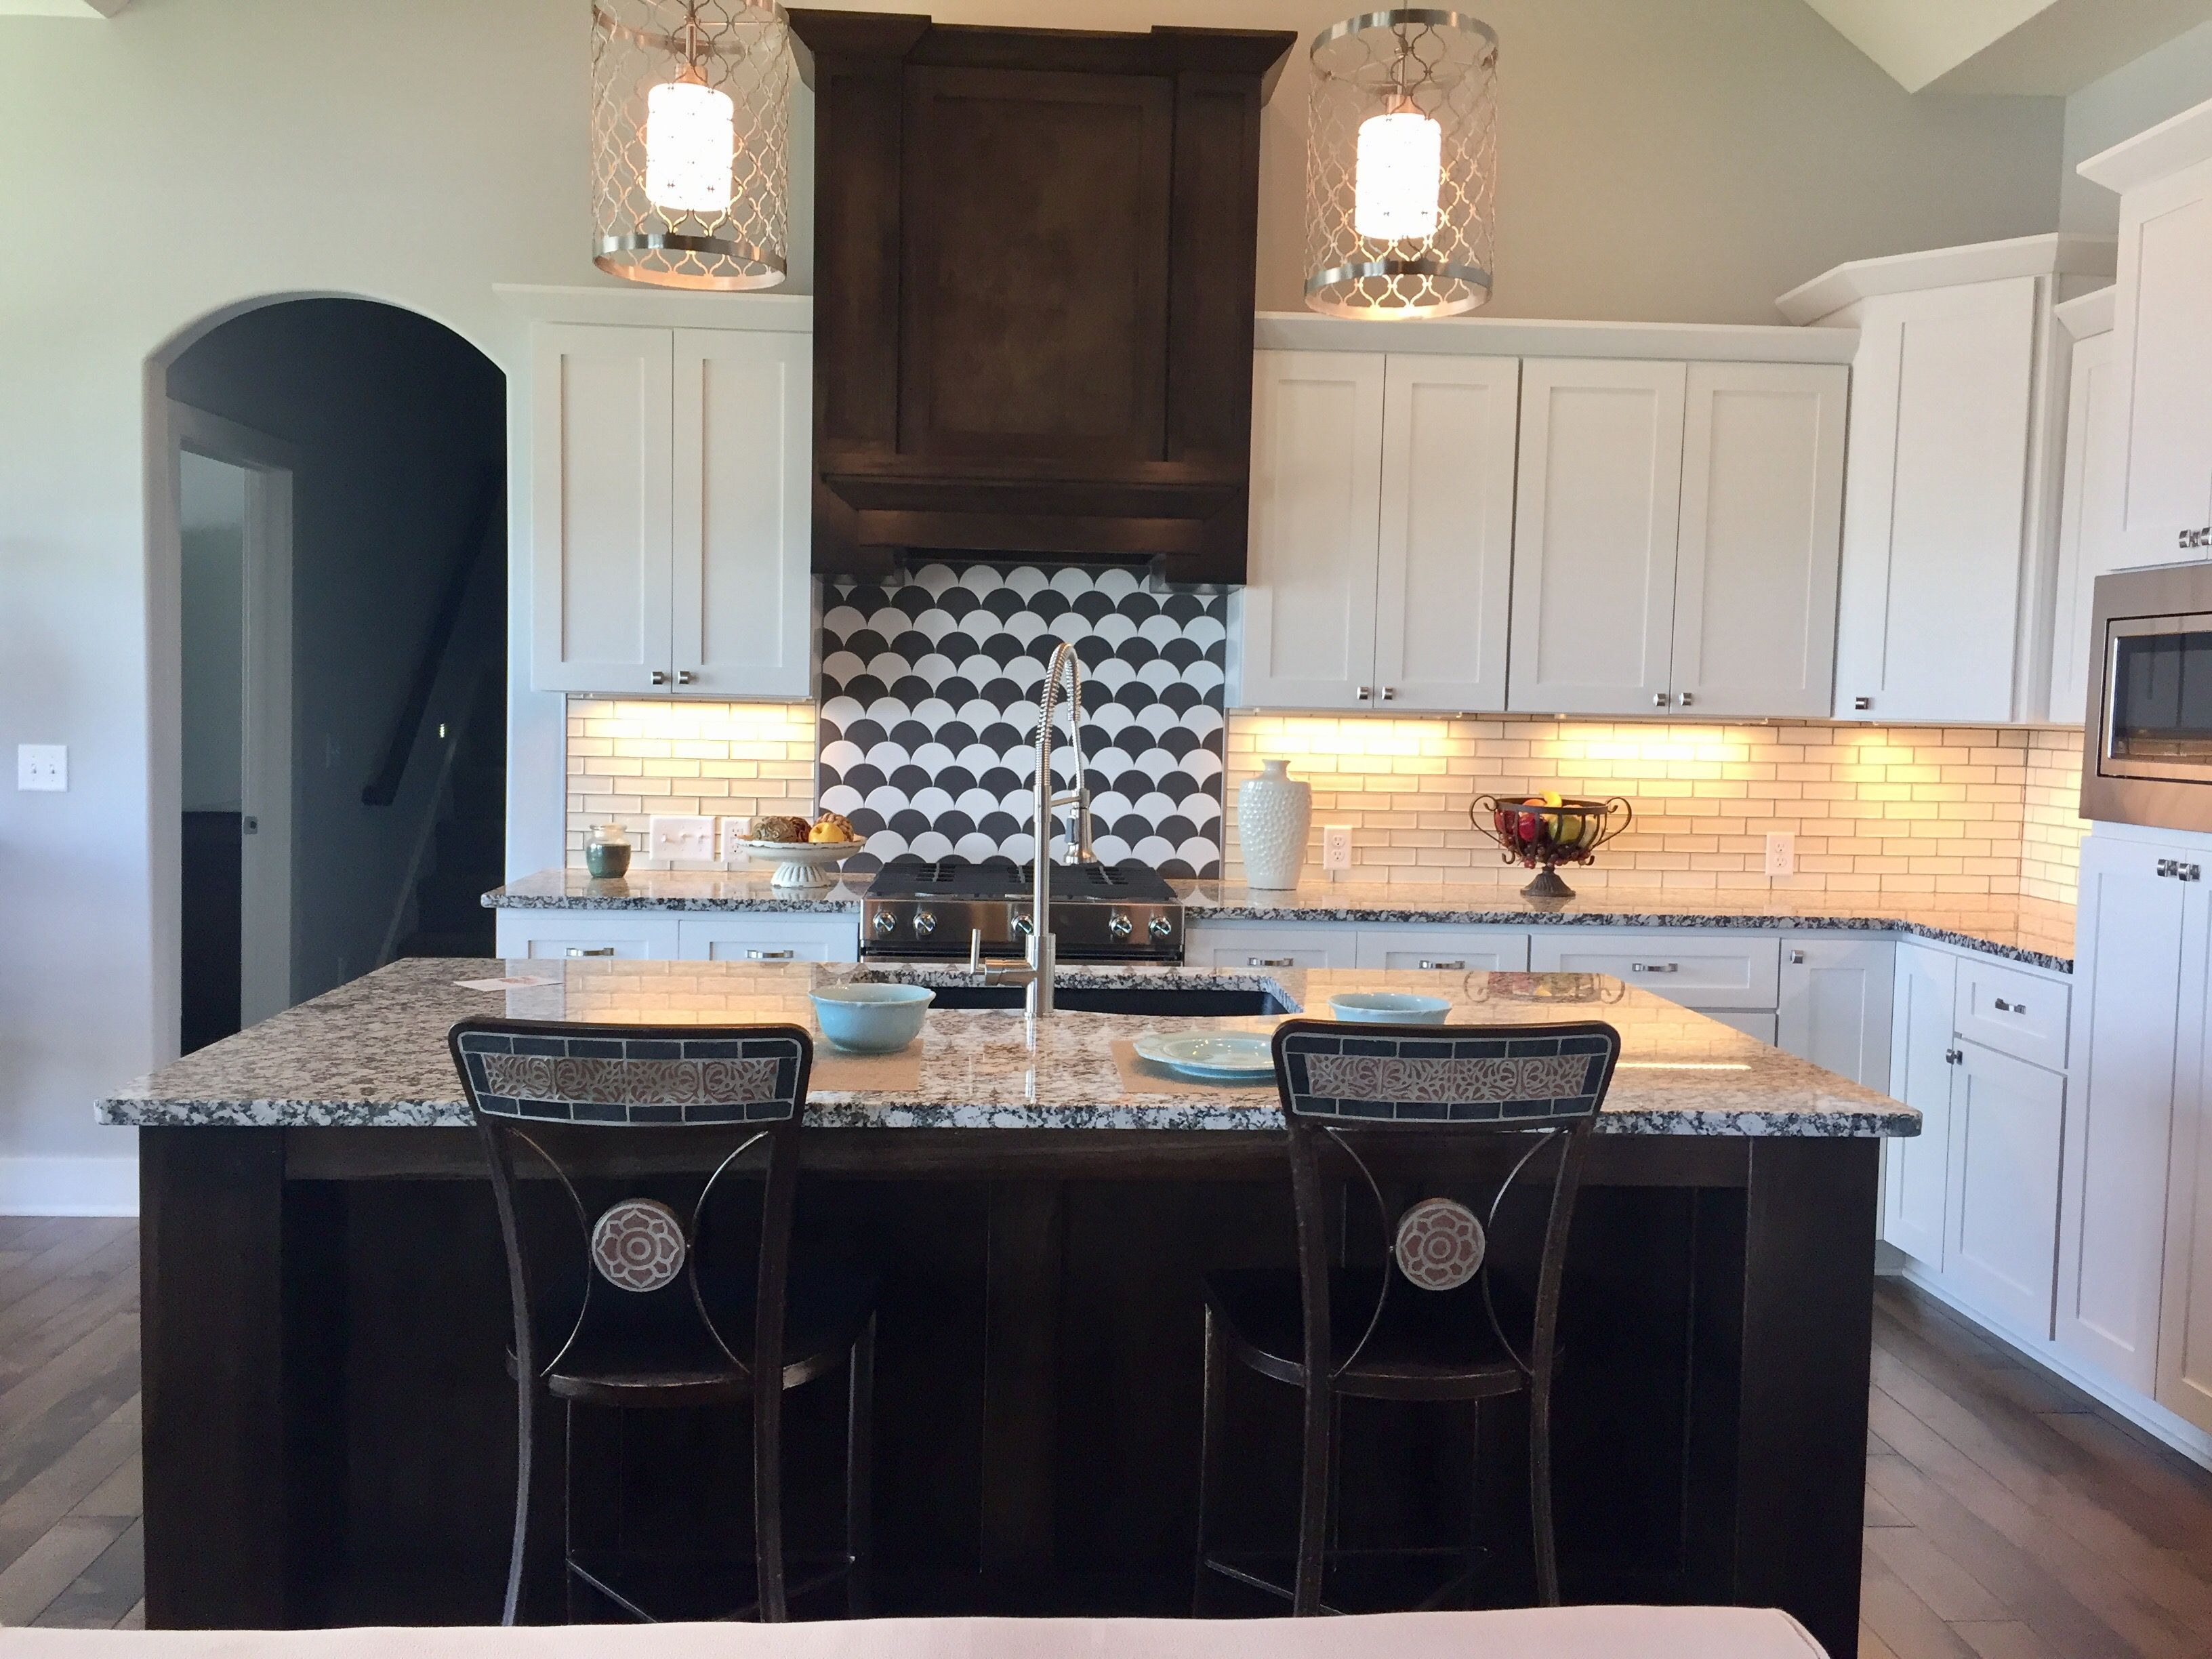 Paint White Kitchen Cabinetry Learn More Builder Preferred - Discount kitchen cabinets wichita ks